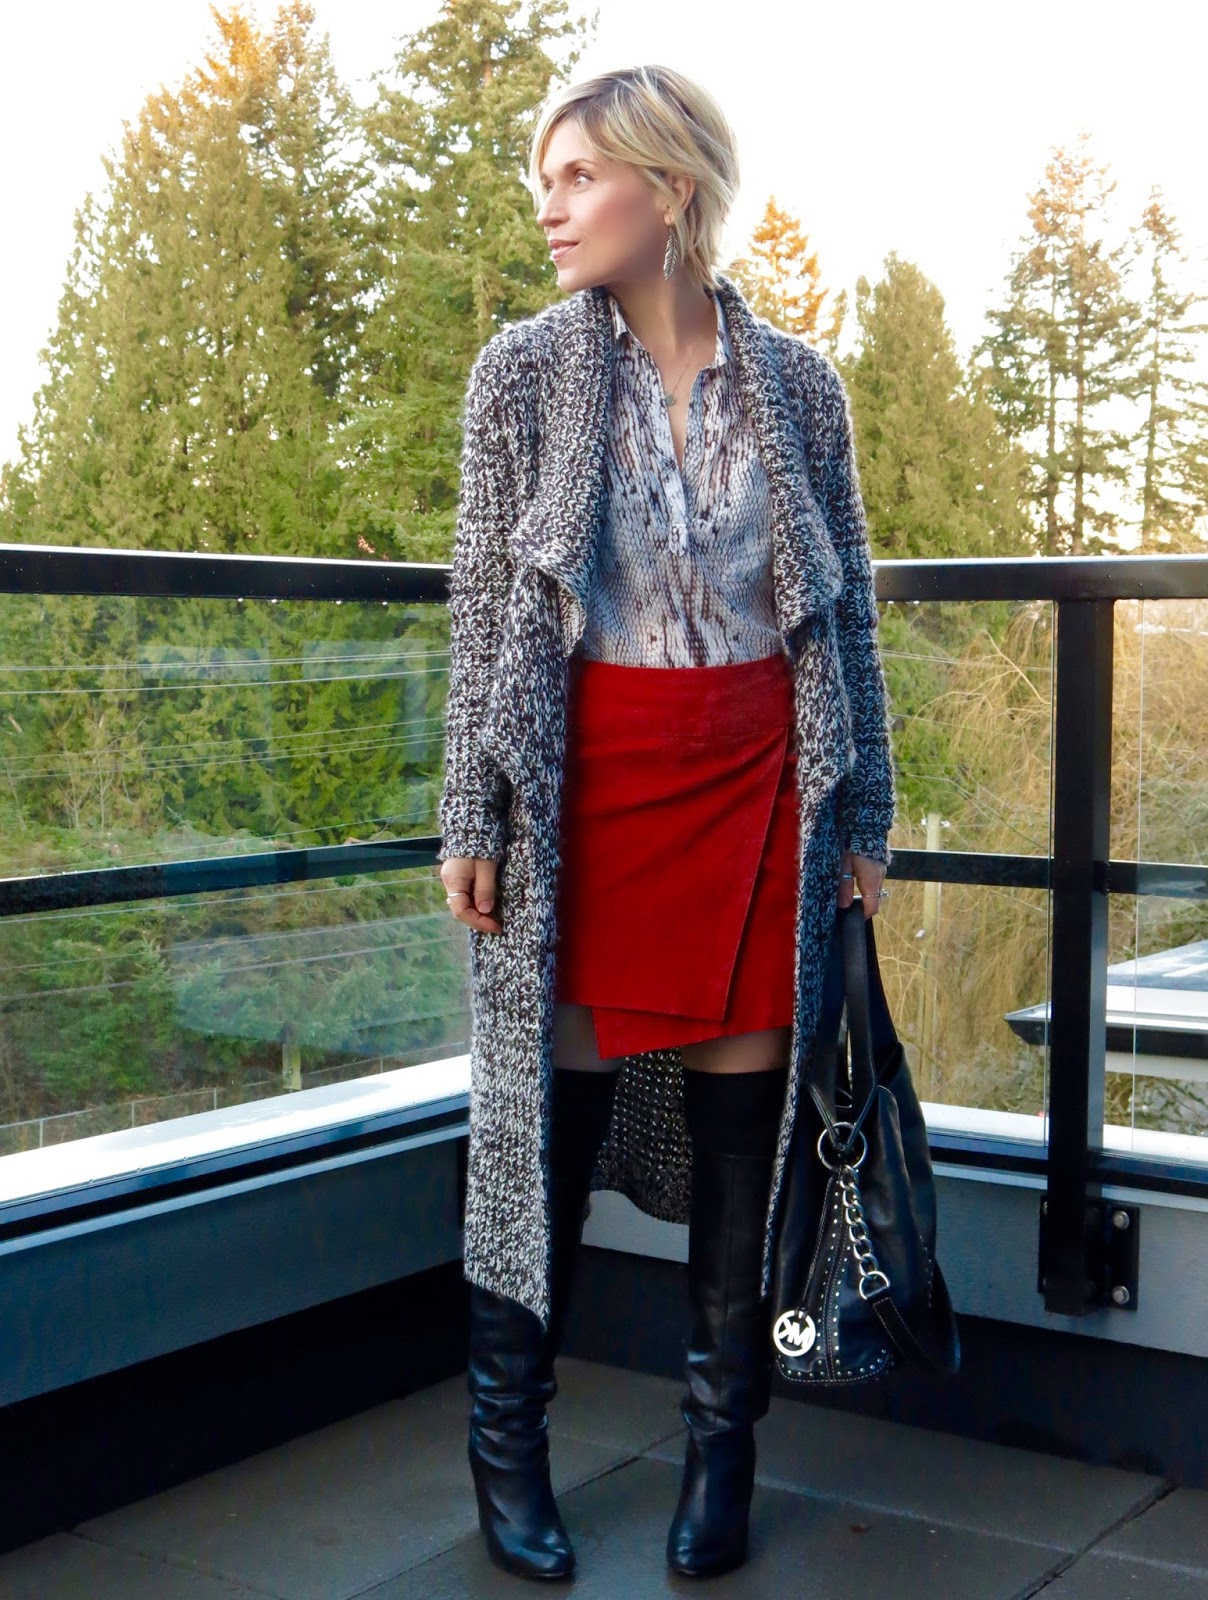 styling a red suede envelope skirt with a snake-print blouse, over-the-knee socks, tall boots, and a sweater coat